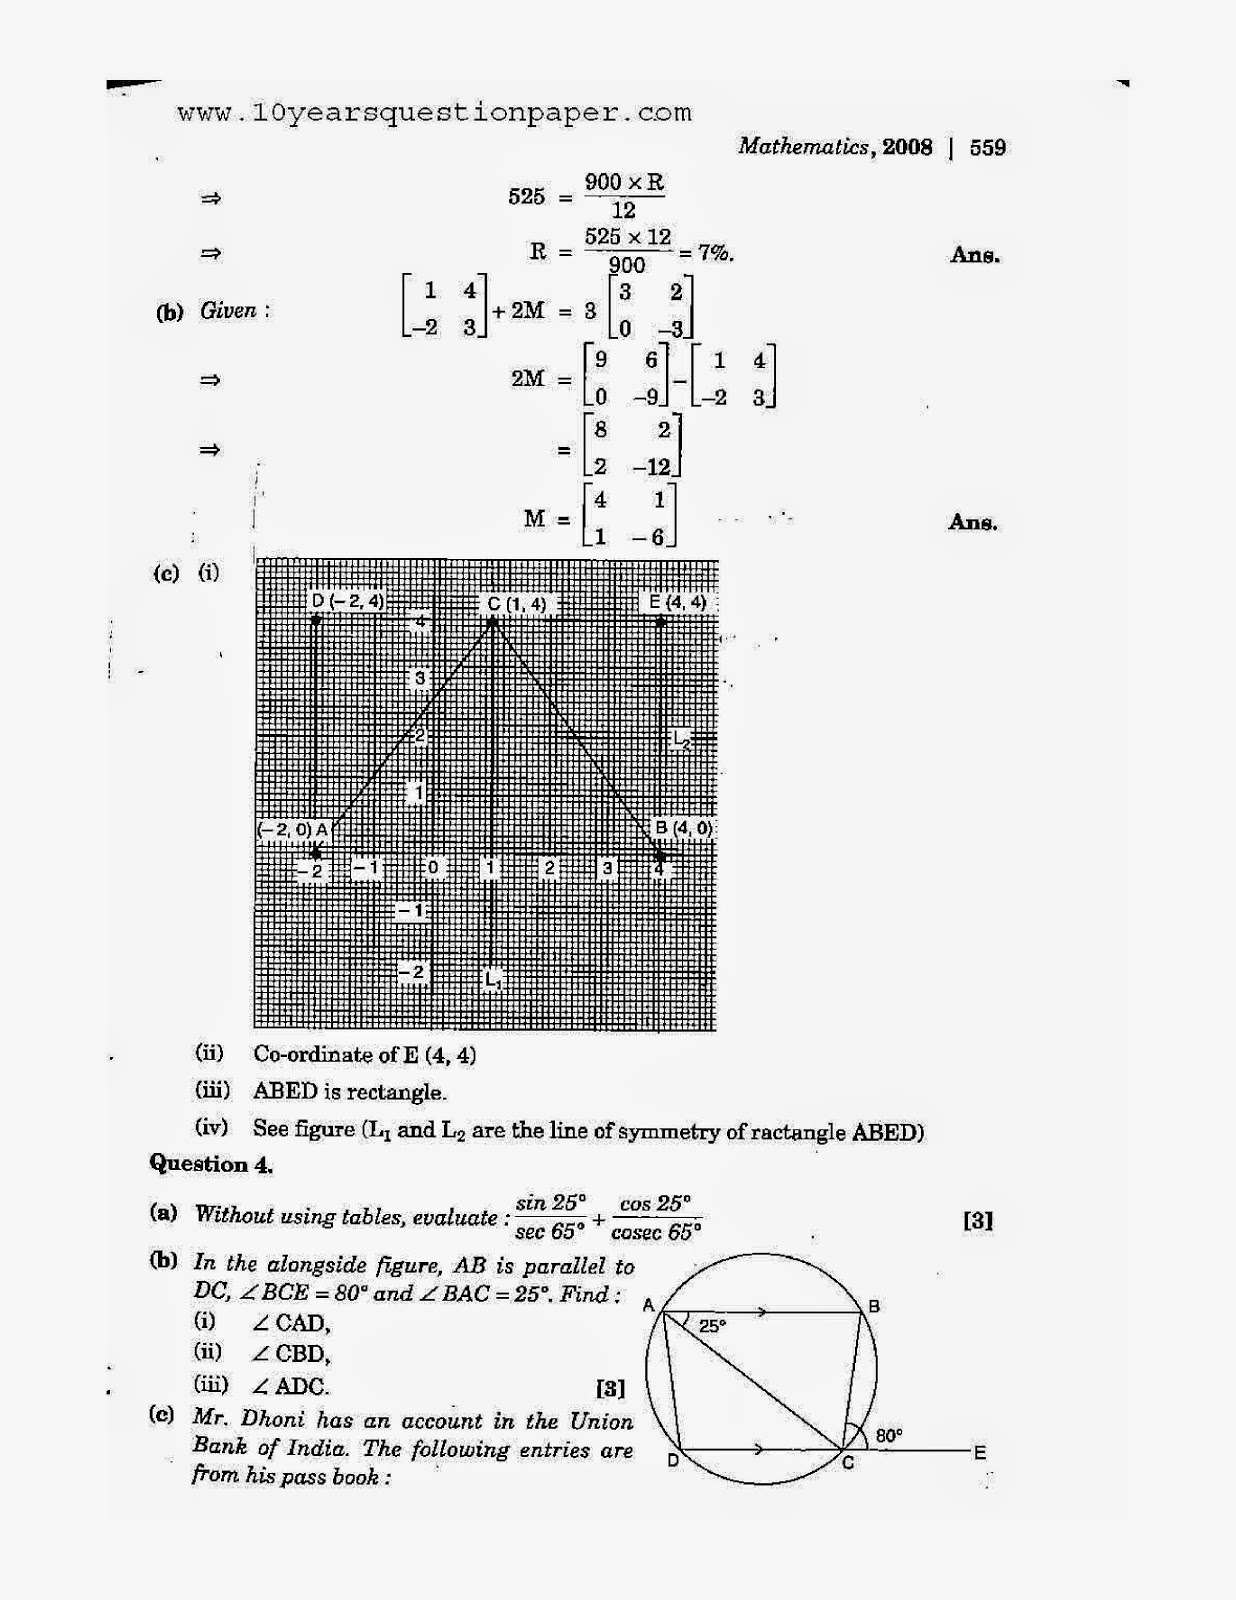 icse class 10th mathematics solved question paper 2008